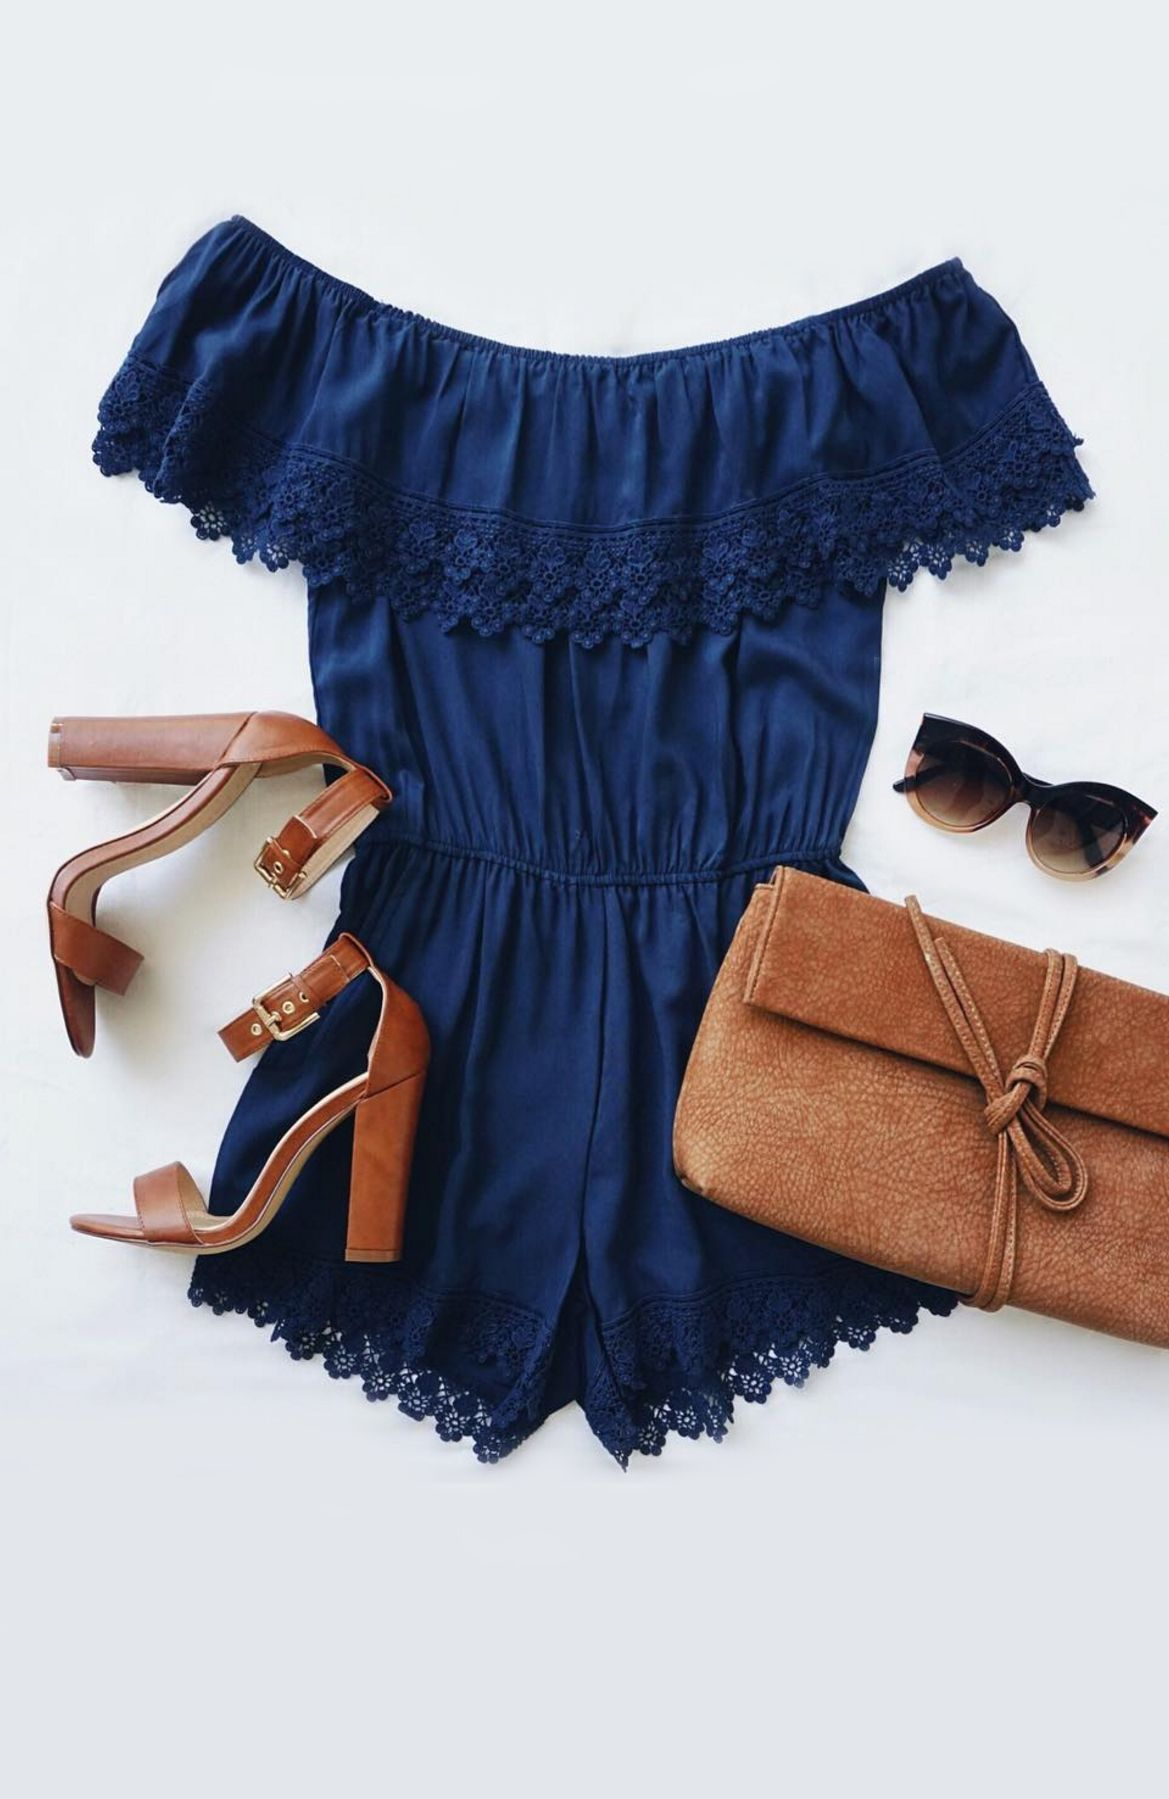 others follow coventina navy blue off the shoulder lace romper sommeroutfits sommer und kleidung. Black Bedroom Furniture Sets. Home Design Ideas